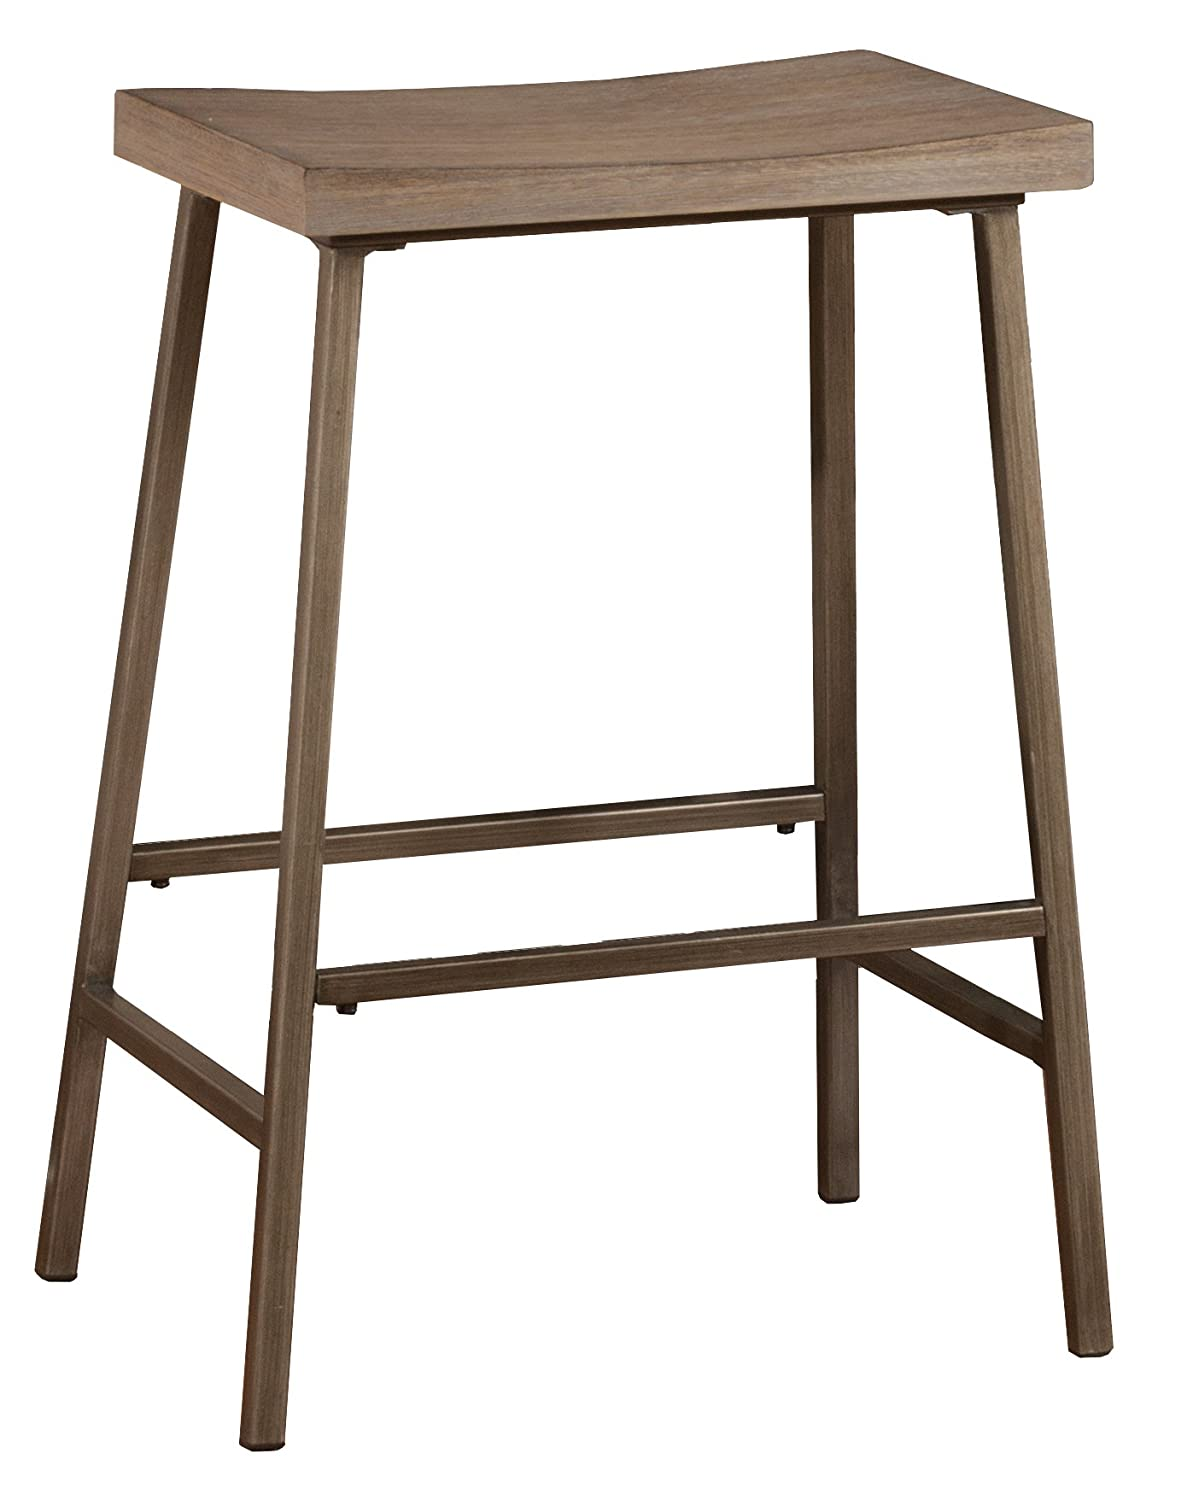 Hillsdale Furniture Kennon Stool, Distressed Brown Gray